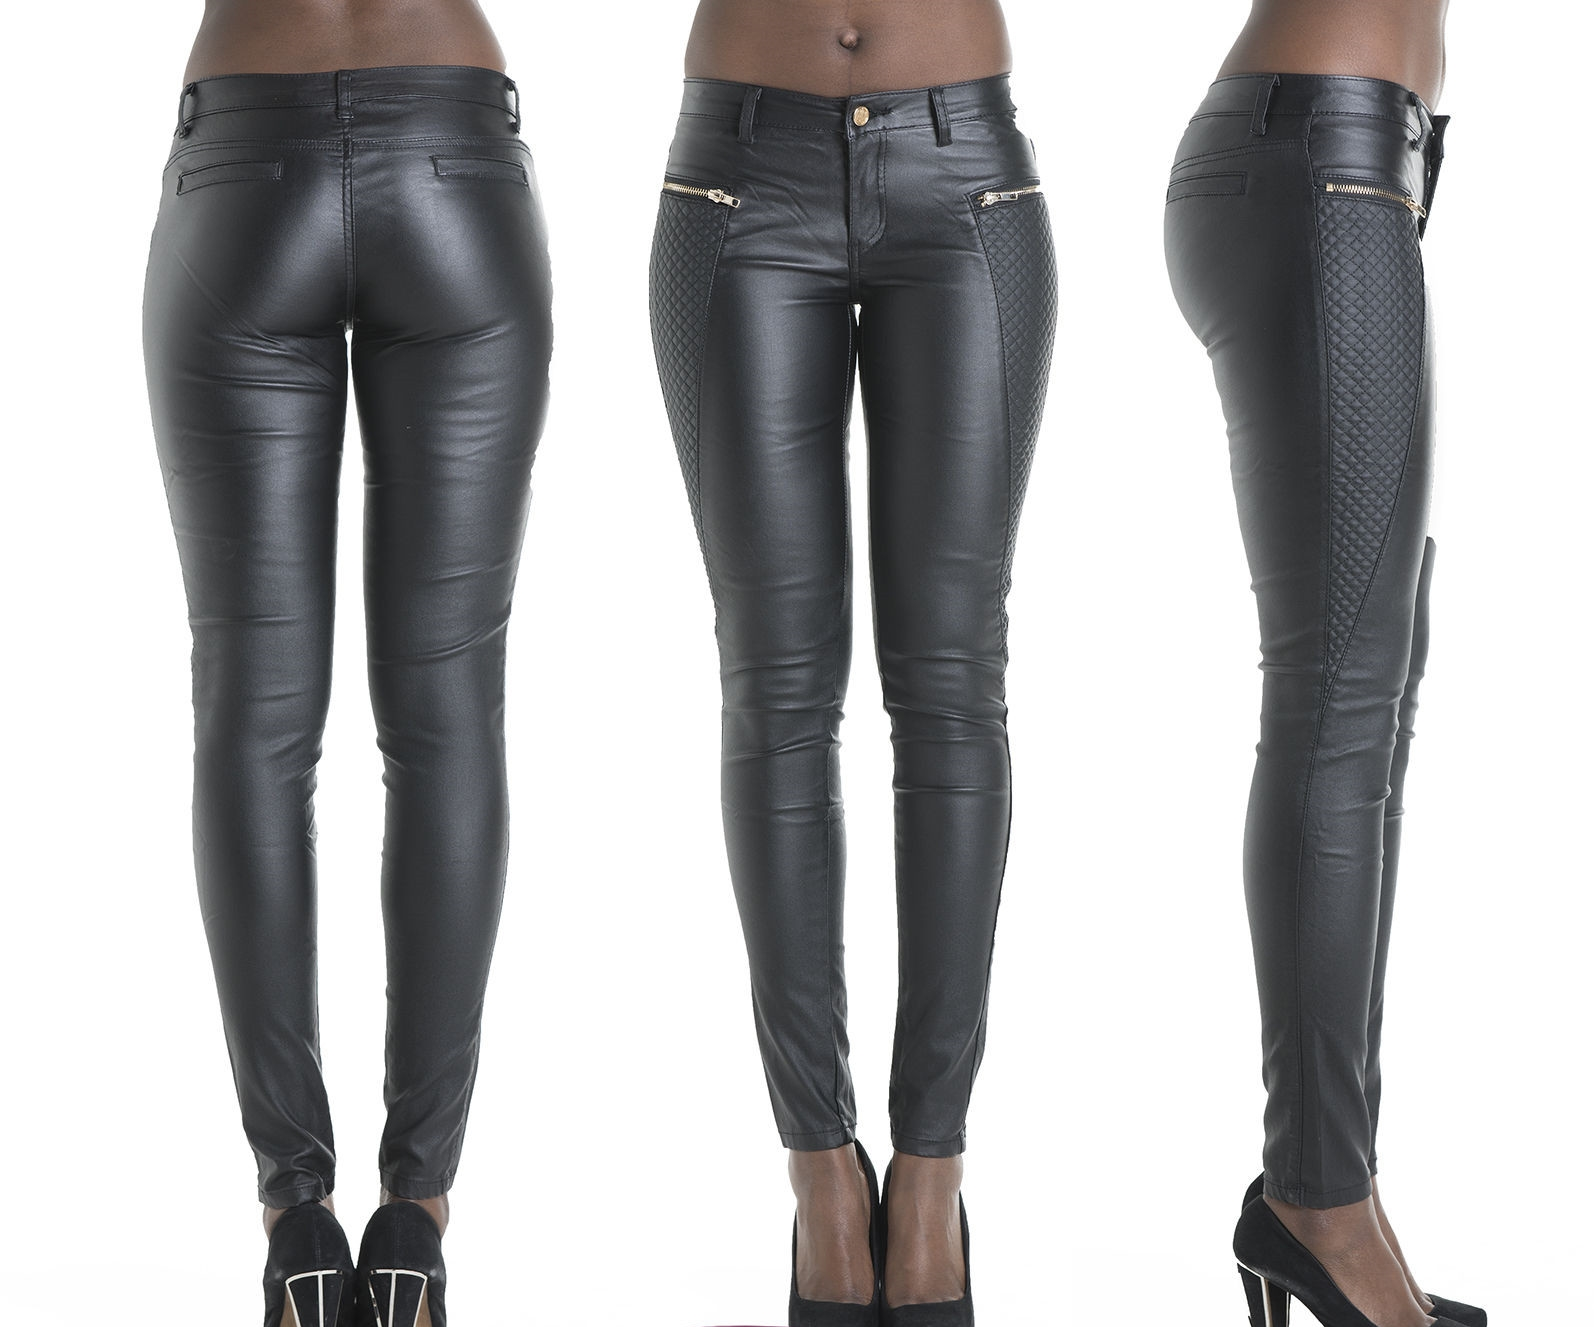 Pants: Free Shipping on orders over $45 at shopnow-vjpmehag.cf - Your Online Pants Store! Get 5% in rewards with Club O!